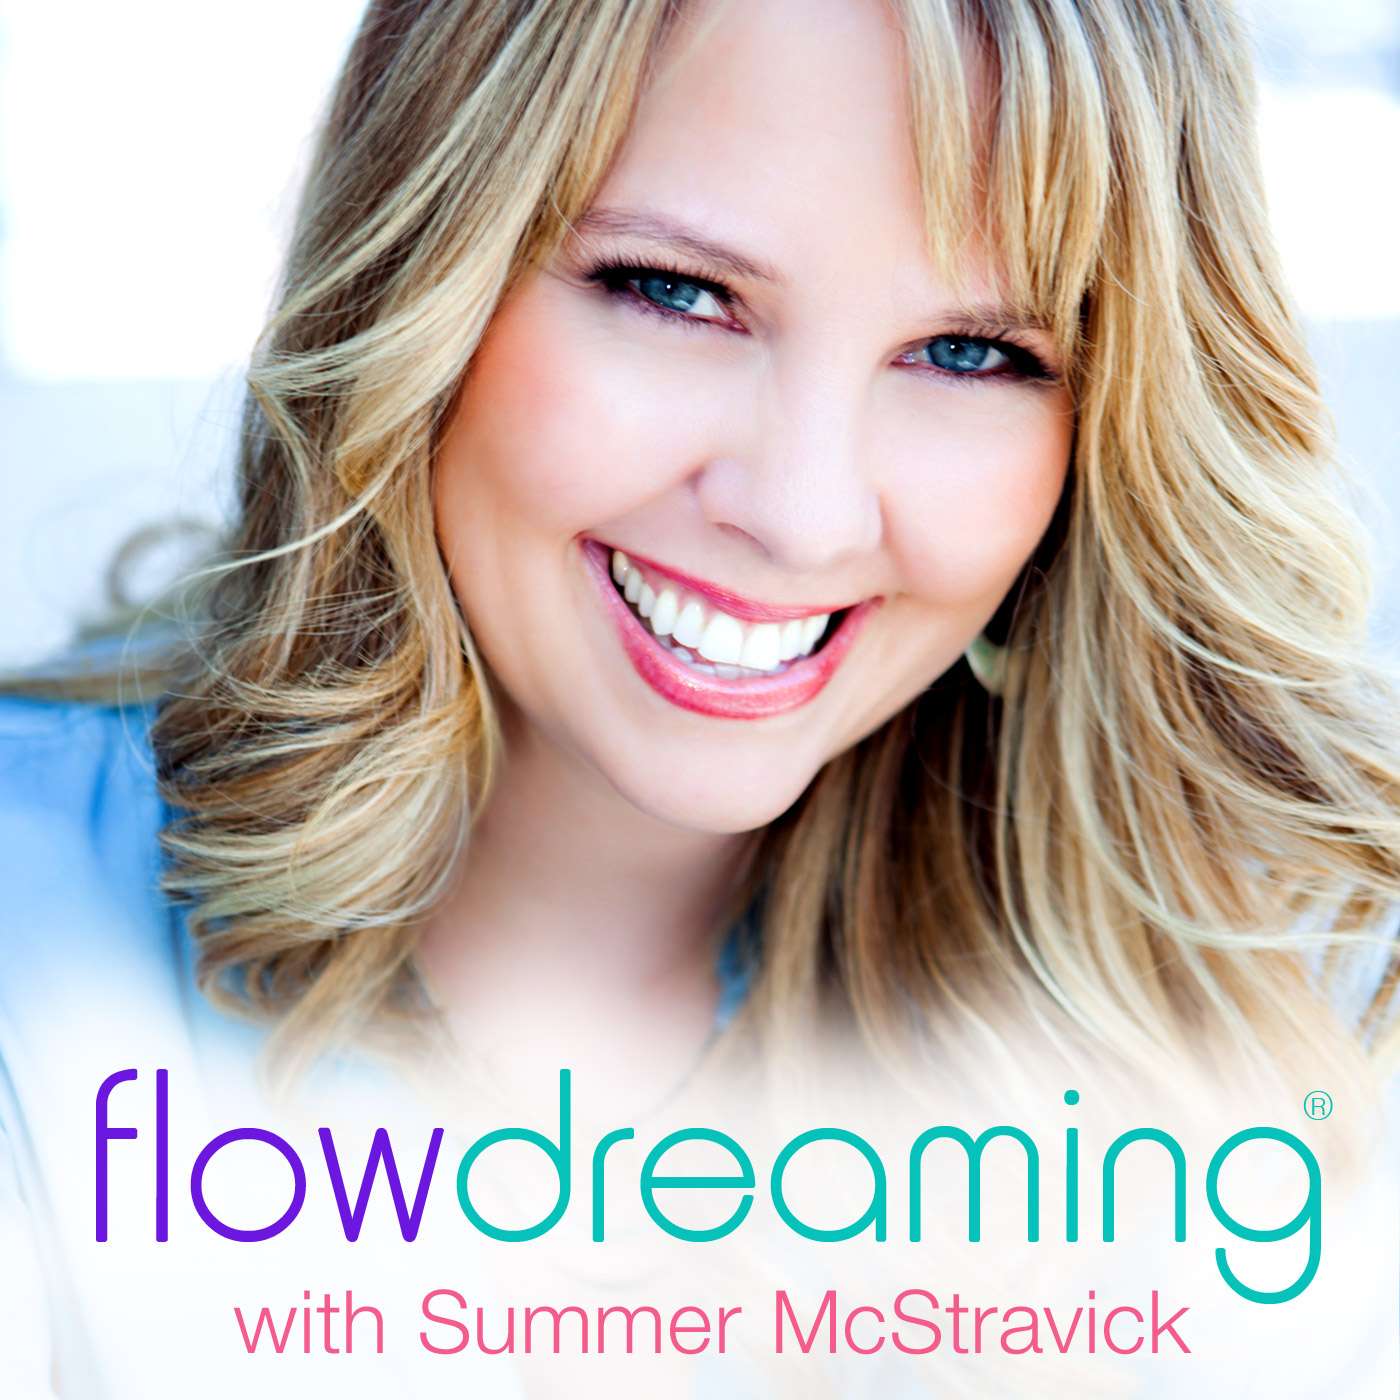 Flowdreaming with Summer McStravick show art